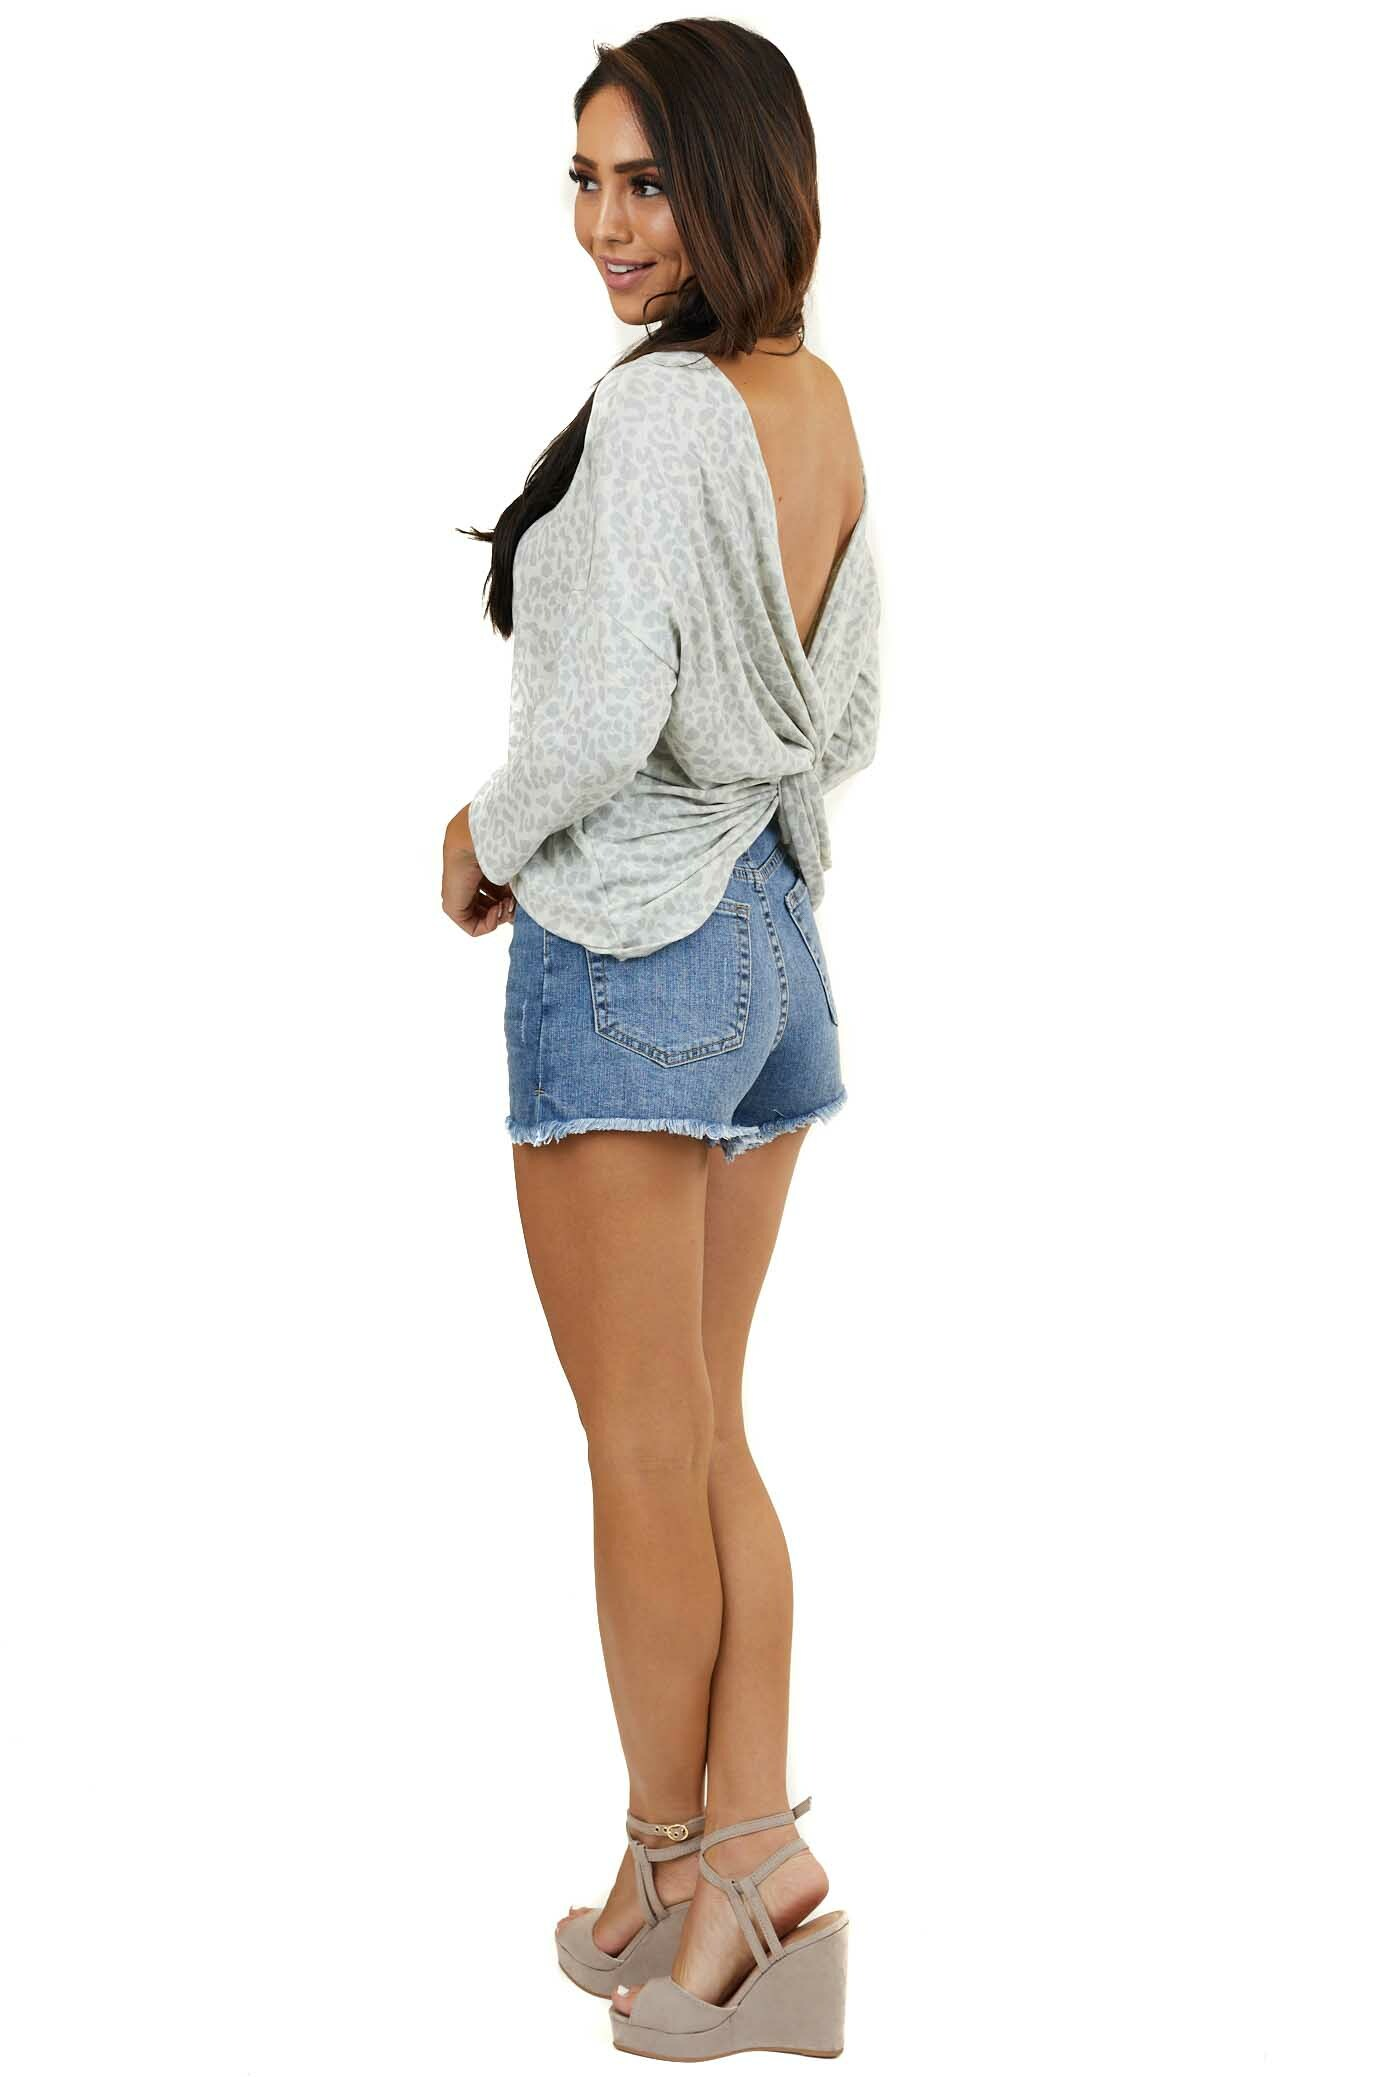 Dove Grey Leopard 3/4 Length Sleeve Top with Twisted Back